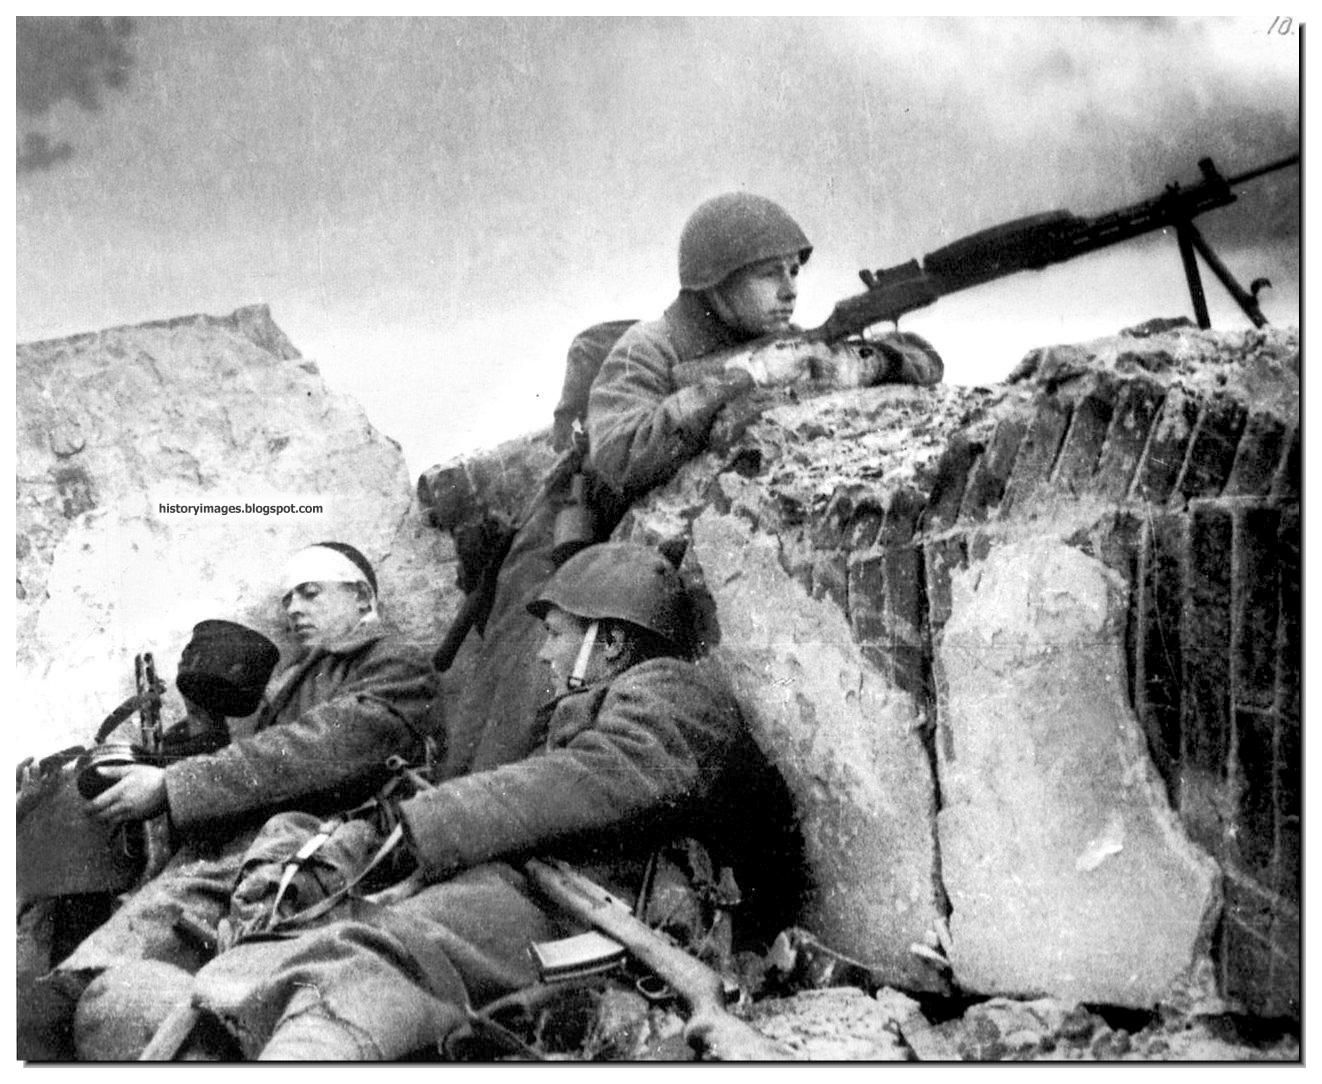 an introduction to the history of battle of stalingrad The battle of stalingrad  what become even more unforgivable is the introduction of  sure it centers on the longest and bloodiest battle in world history,.